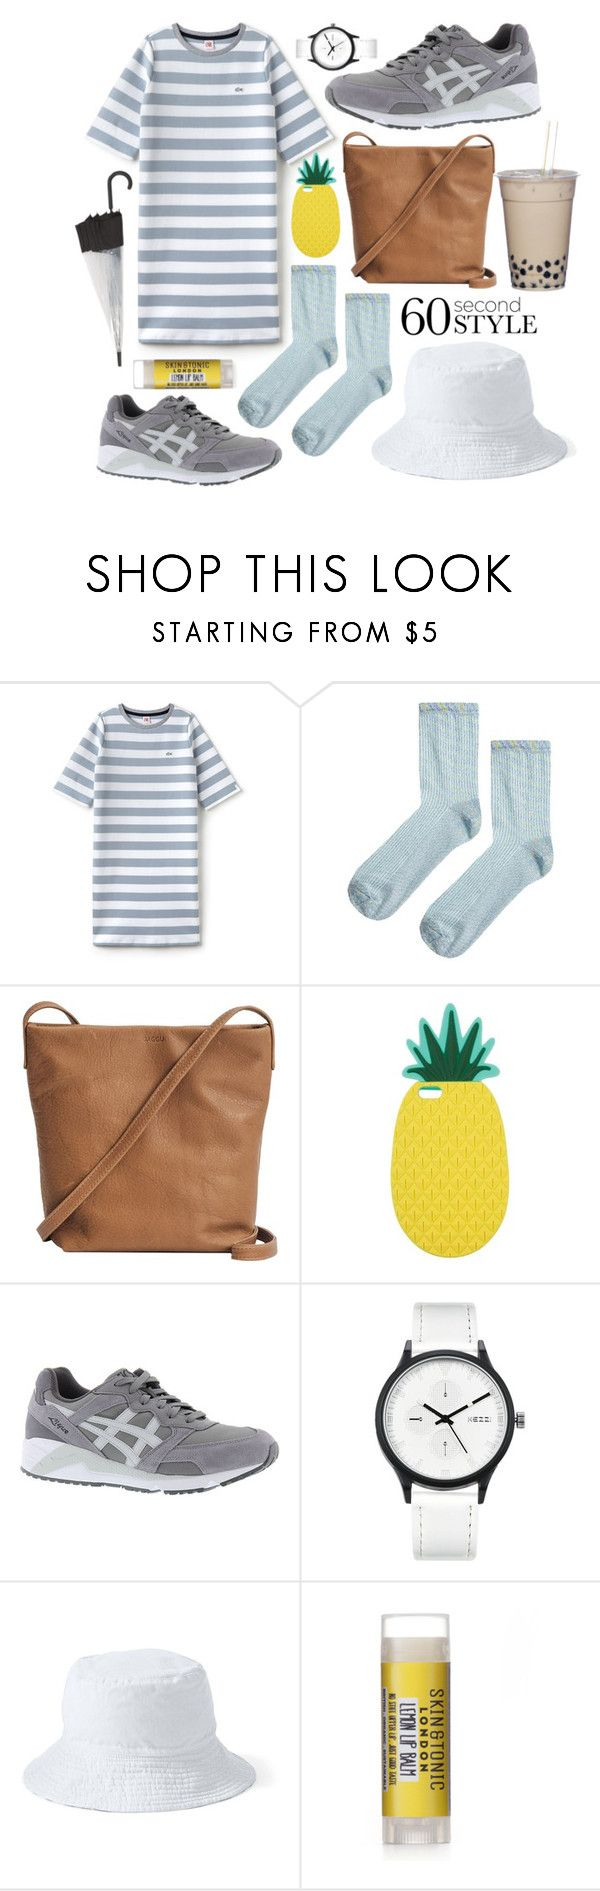 """60 seconds style"" by shiuan-tzylu ❤ liked on Polyvore featuring Lacoste L!VE, Topshop, BAGGU, Miss Selfridge, Asics, Lands' End, Hunter, tshirtdresses and 60secondstyle"